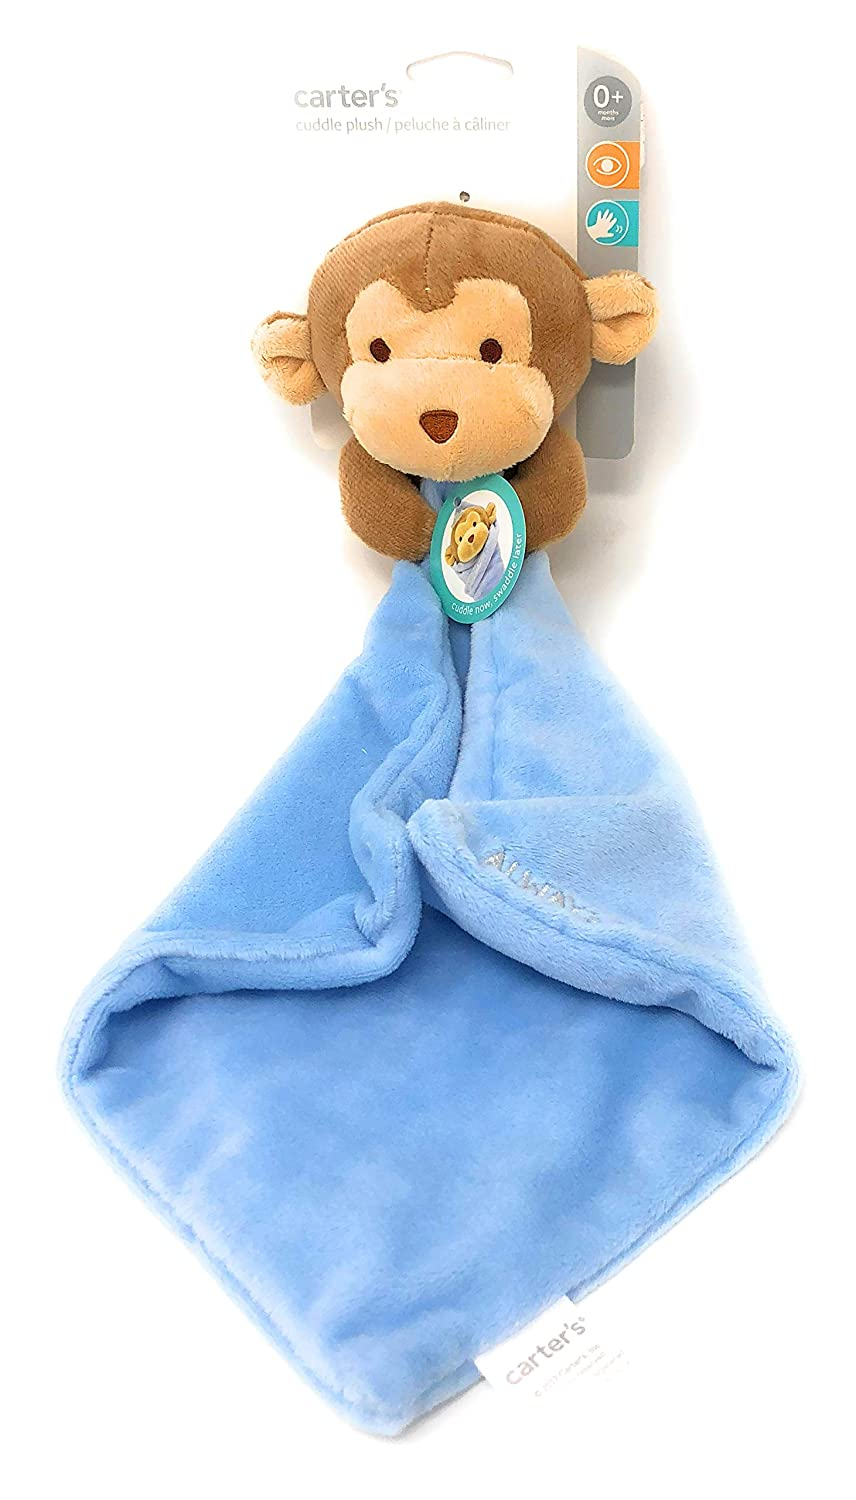 Kids Preferred Carter's Cuddle Plush Swaddle Monkey for Baby